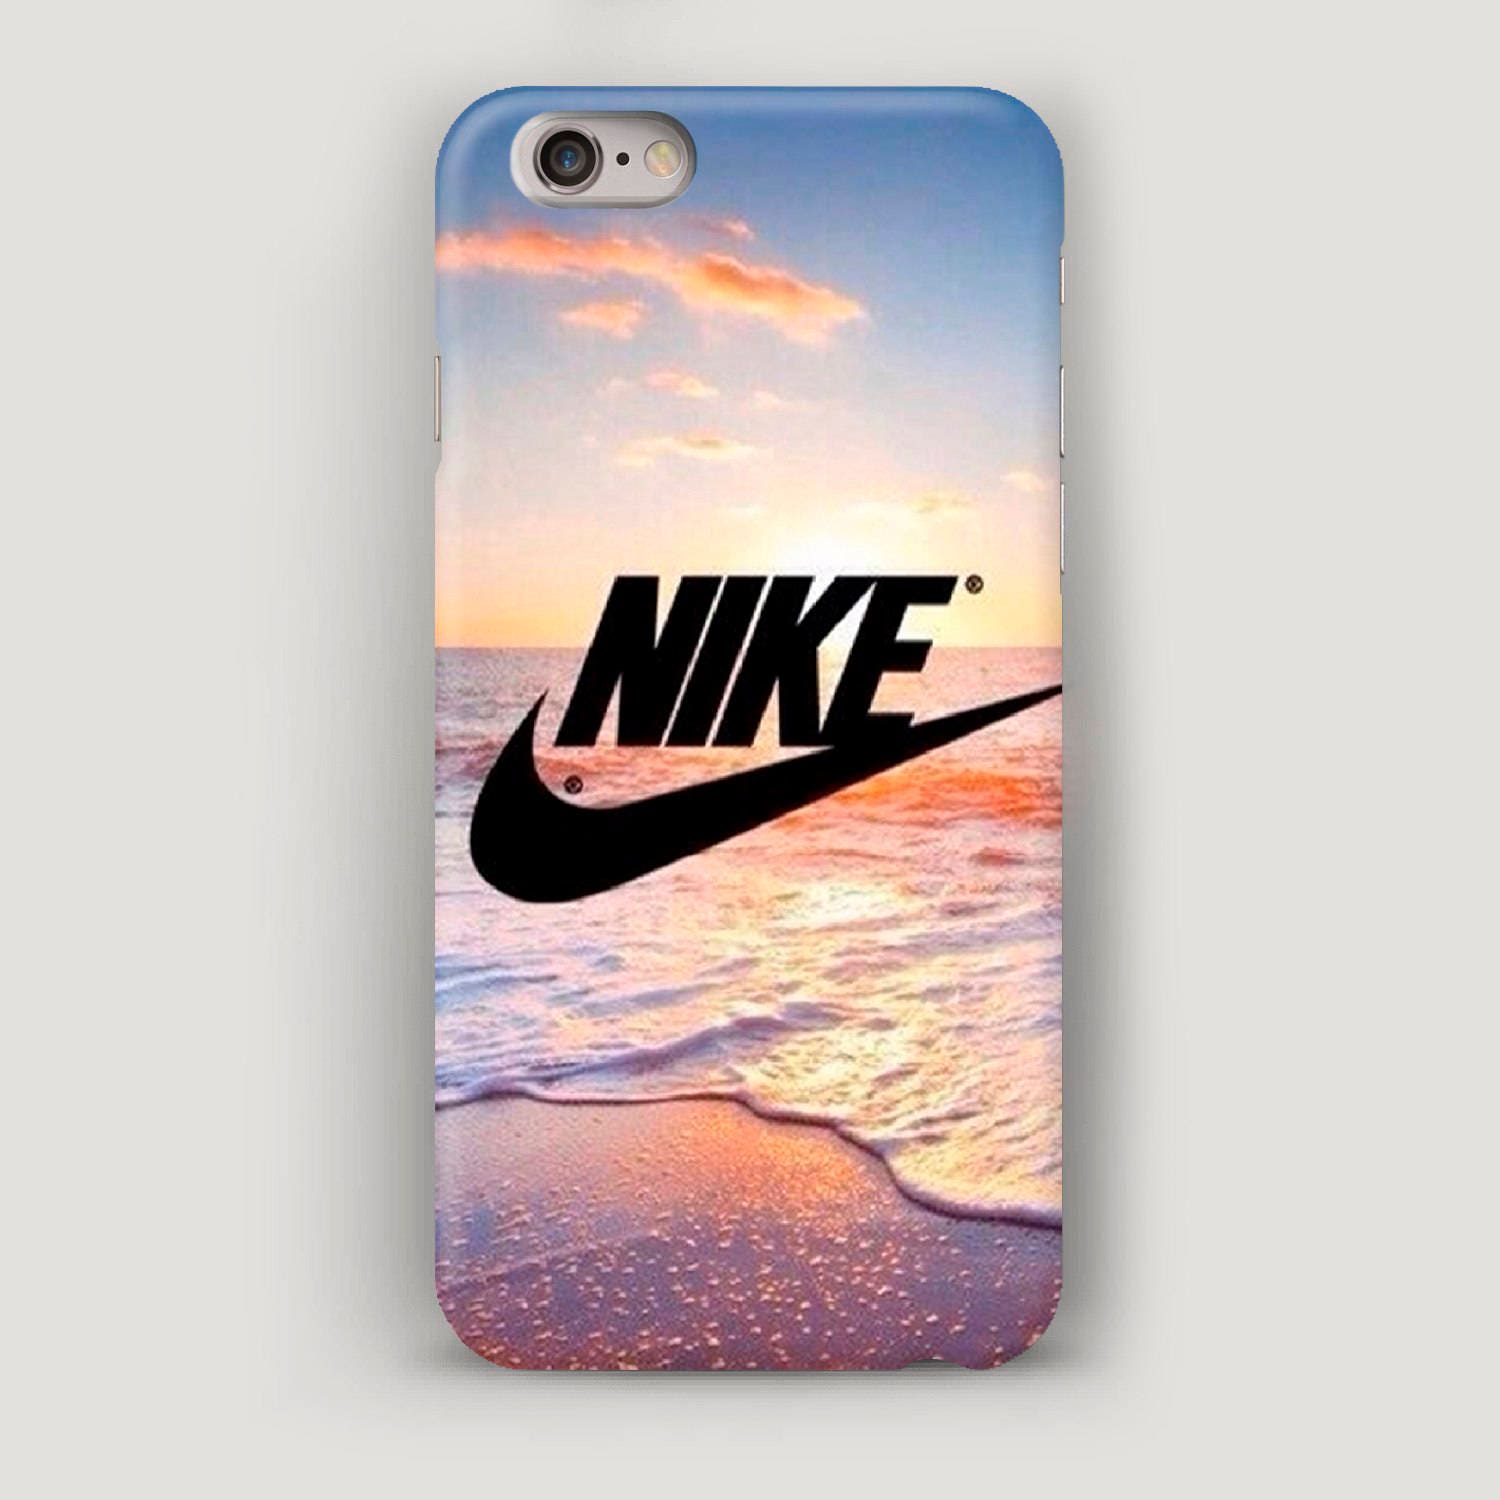 finest selection b8e7d 52427 Beach iPhone 7 Case, Nike iPhone 6 Plus Case, Summer iPhone 5S Case, Galaxy  S7 Case, Nike Phone Case, iPhone Cover, Nike Samsung Case